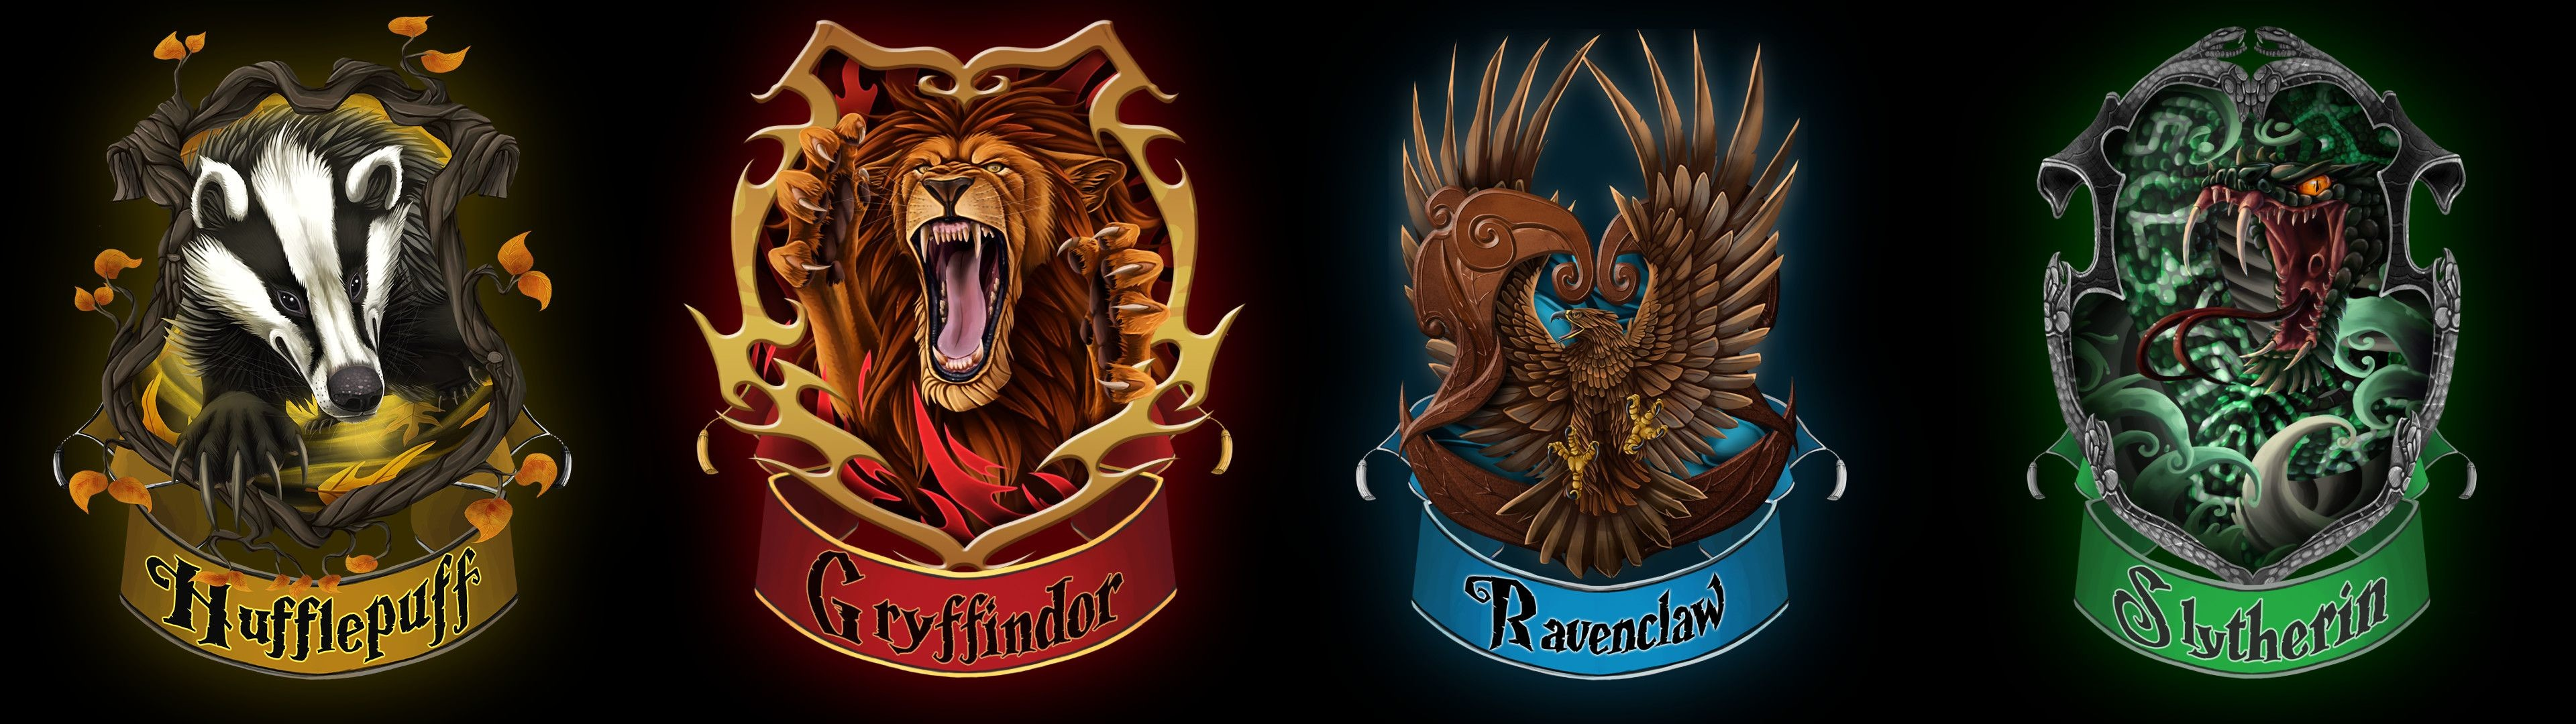 Res: 3840x1080, Gryffindor Wallpaper HD (74+ images)